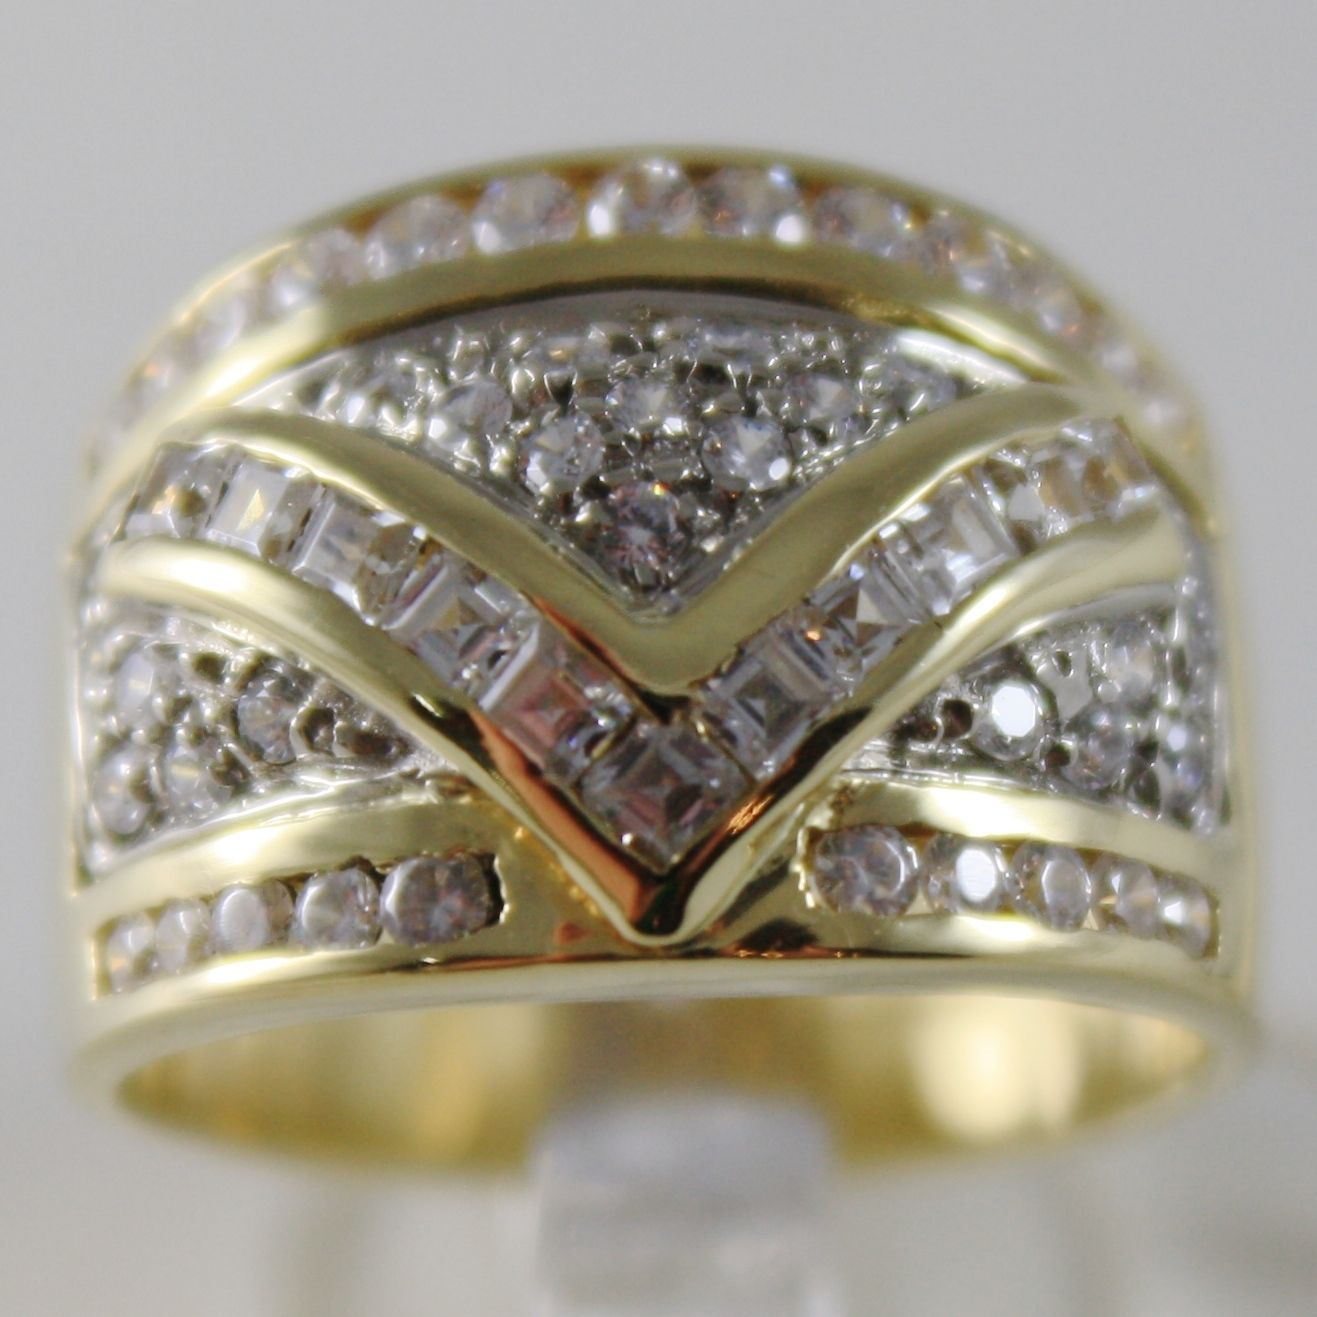 SOLID 18K YELLOW GOLD BAND RING LUMINOUS ZIRCONIA PRINCESS CUT, MADE IN ITALY